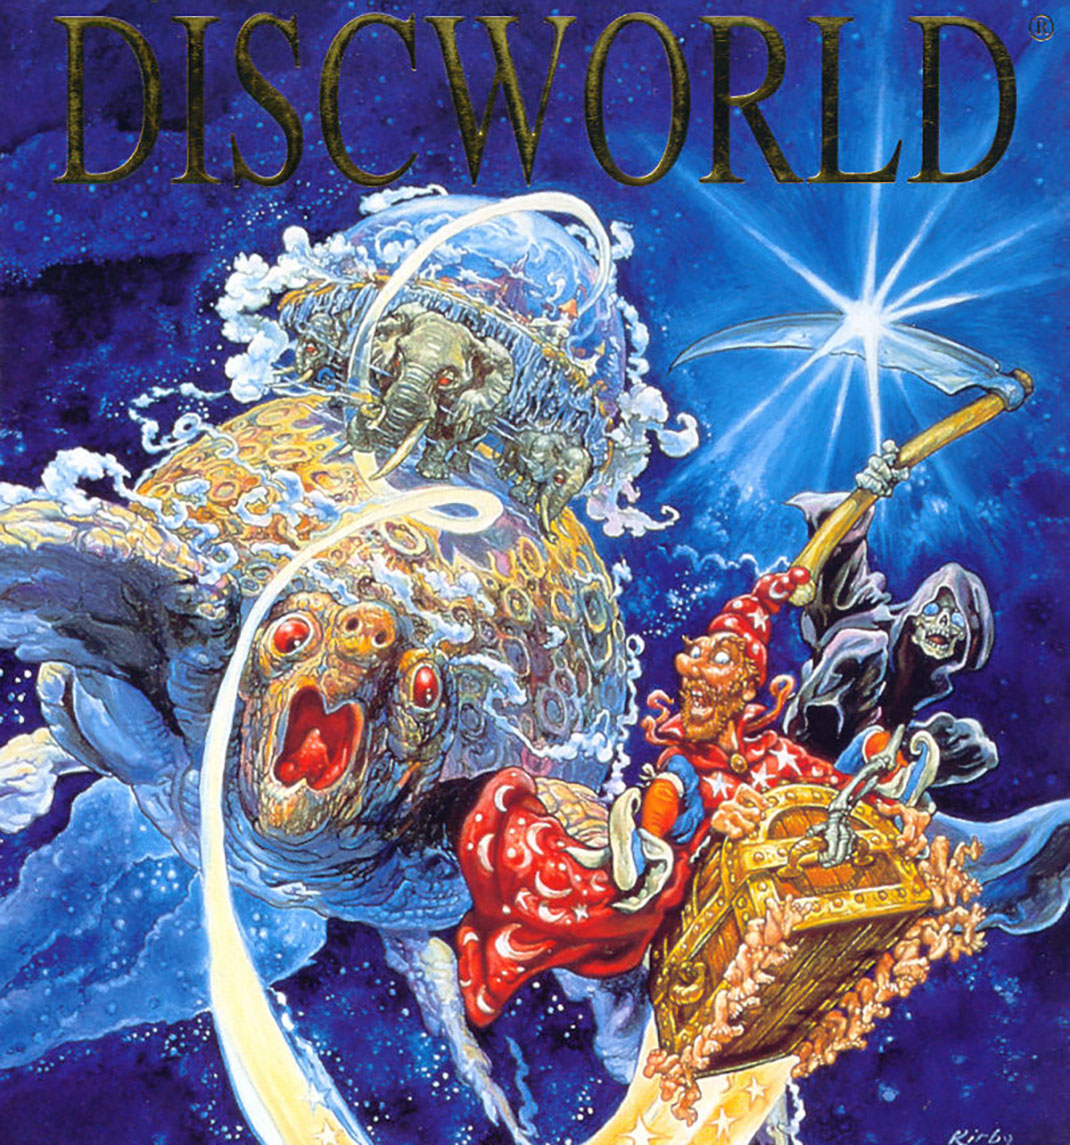 jv-discworld-cover